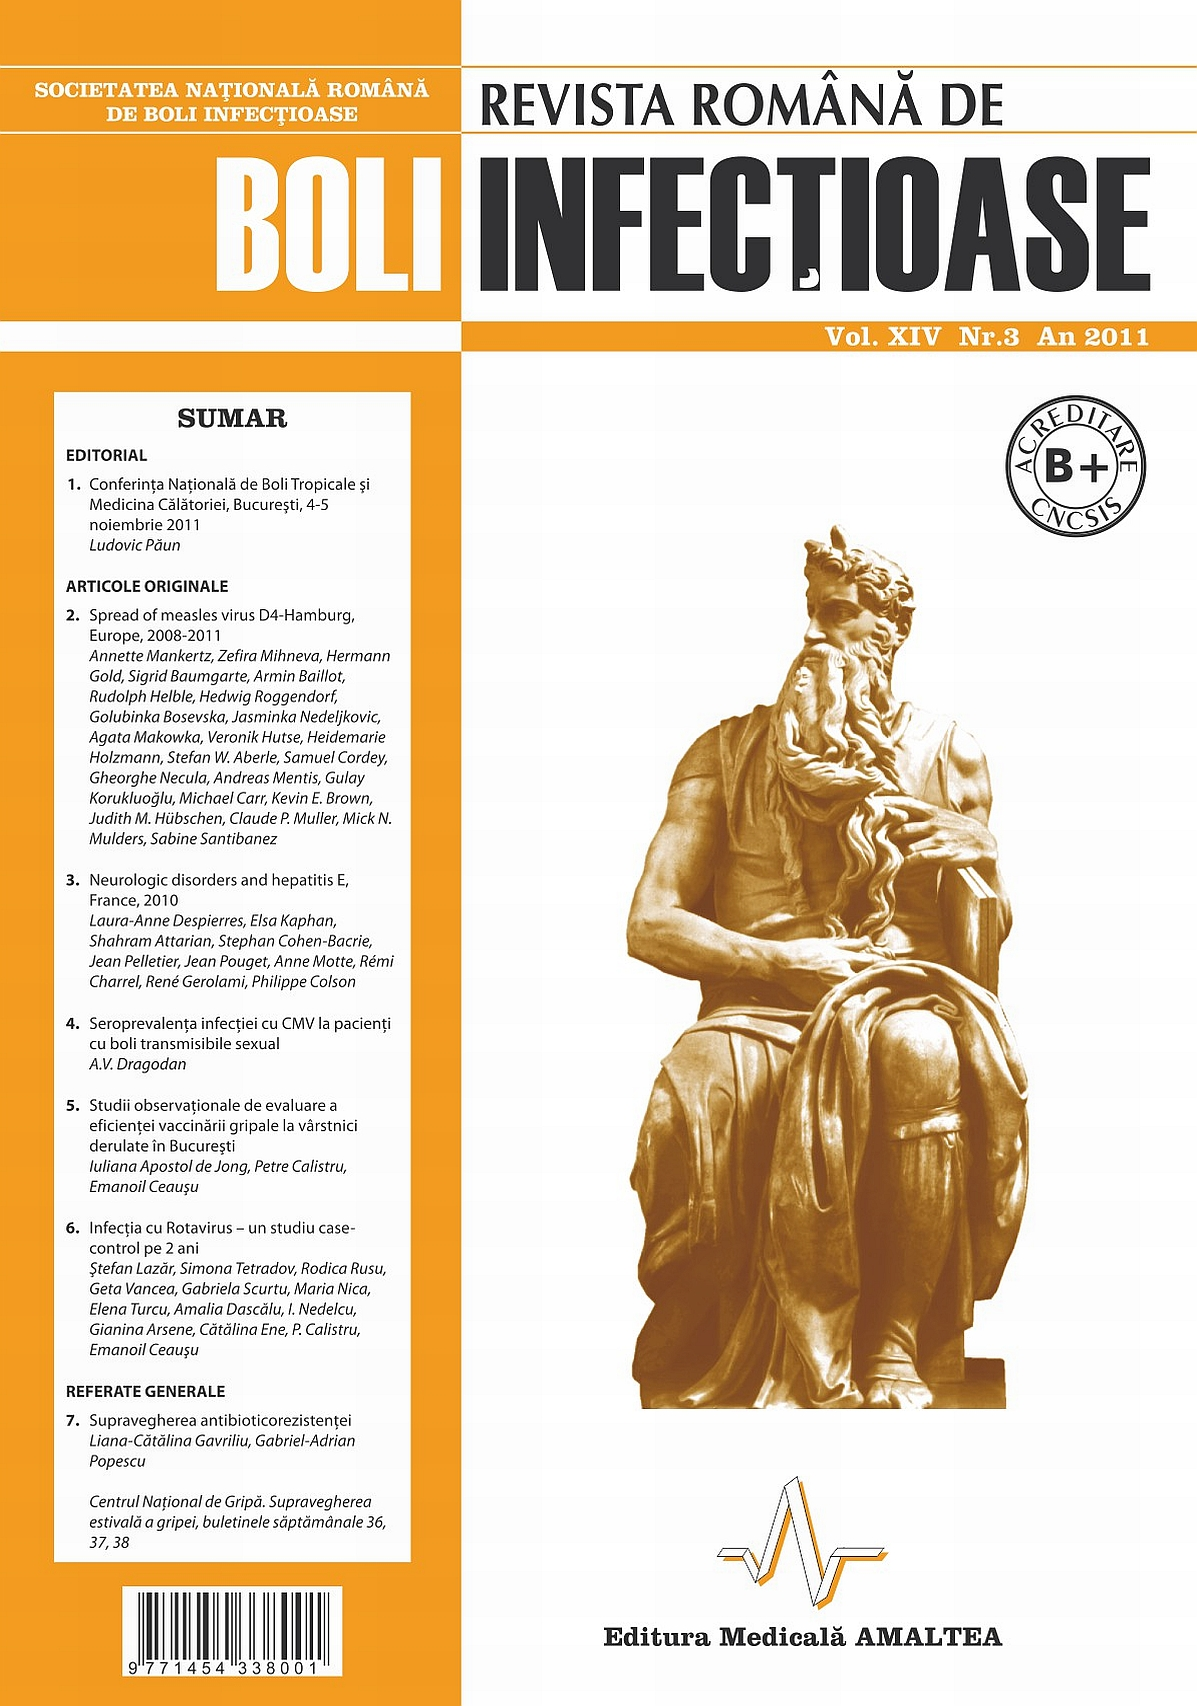 Revista Romana de Boli Infectioase | Vol. XIV, No. 3, 2011